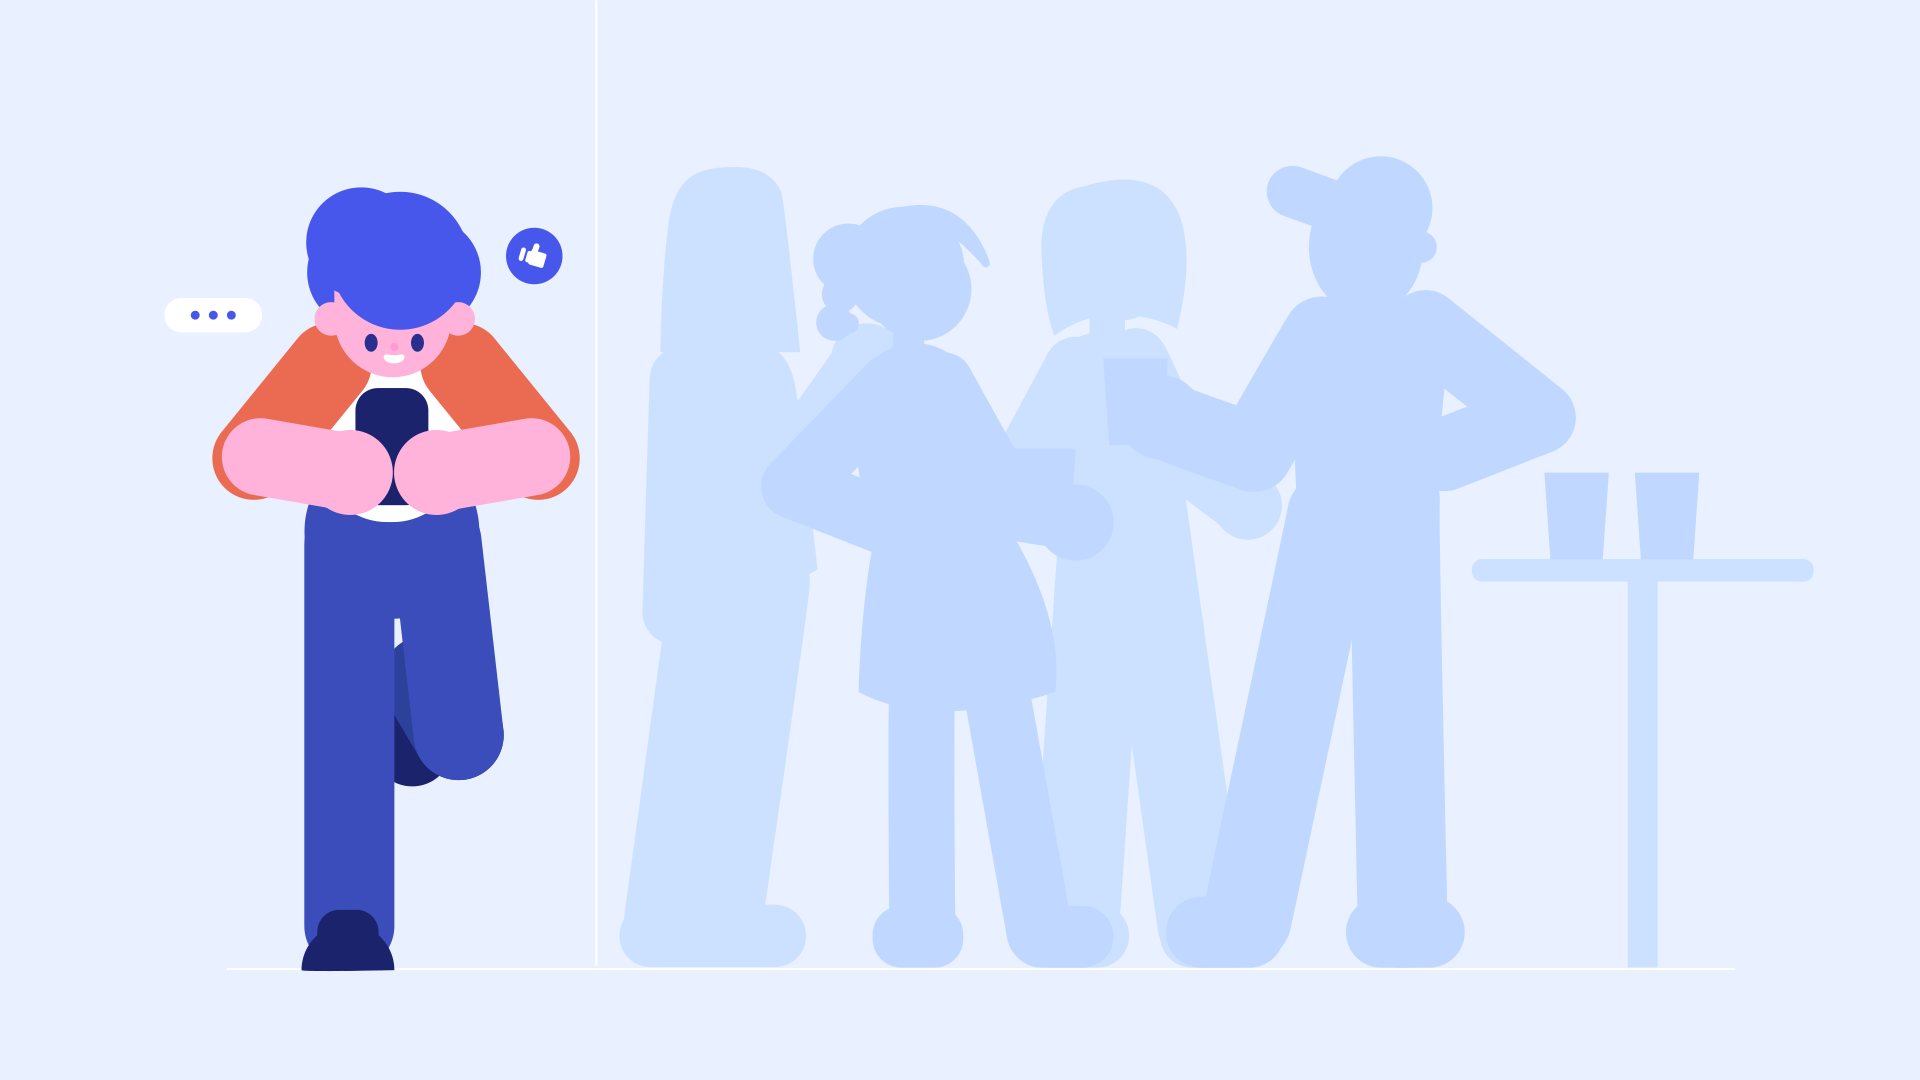 A person looks at their smartphone, standing apart from a group of friends.